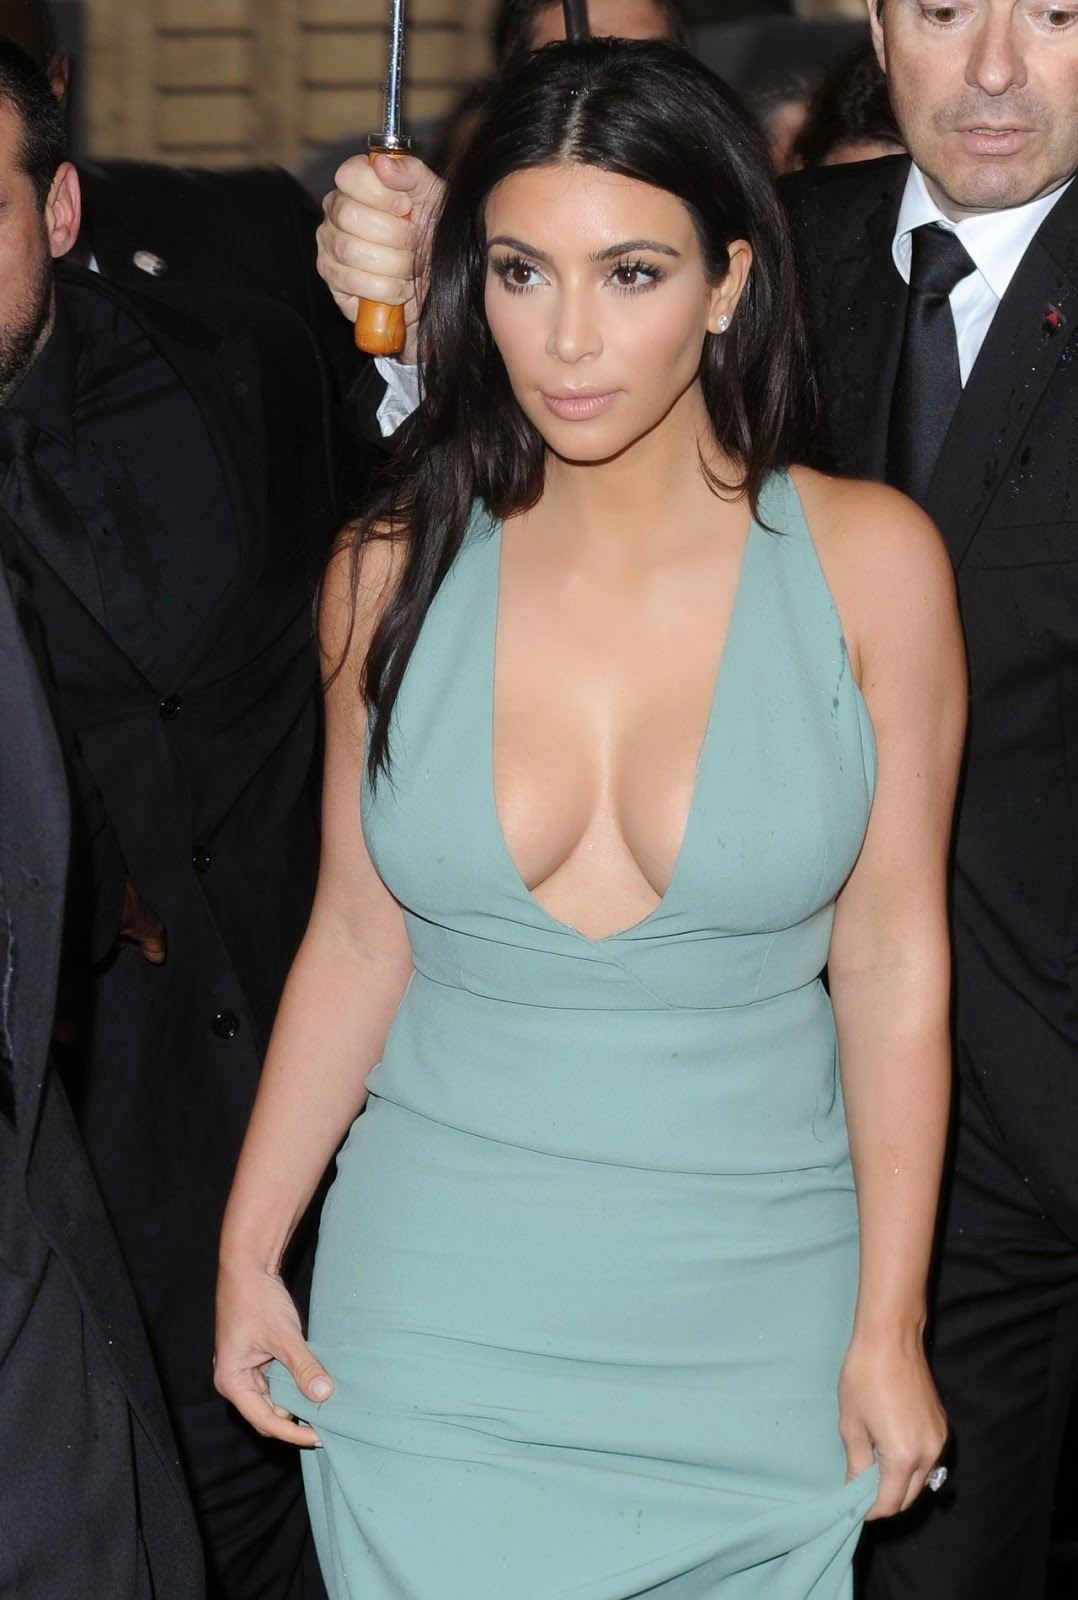 Kim Kardashian Displays Cleavage In A Low Cut Gown At The